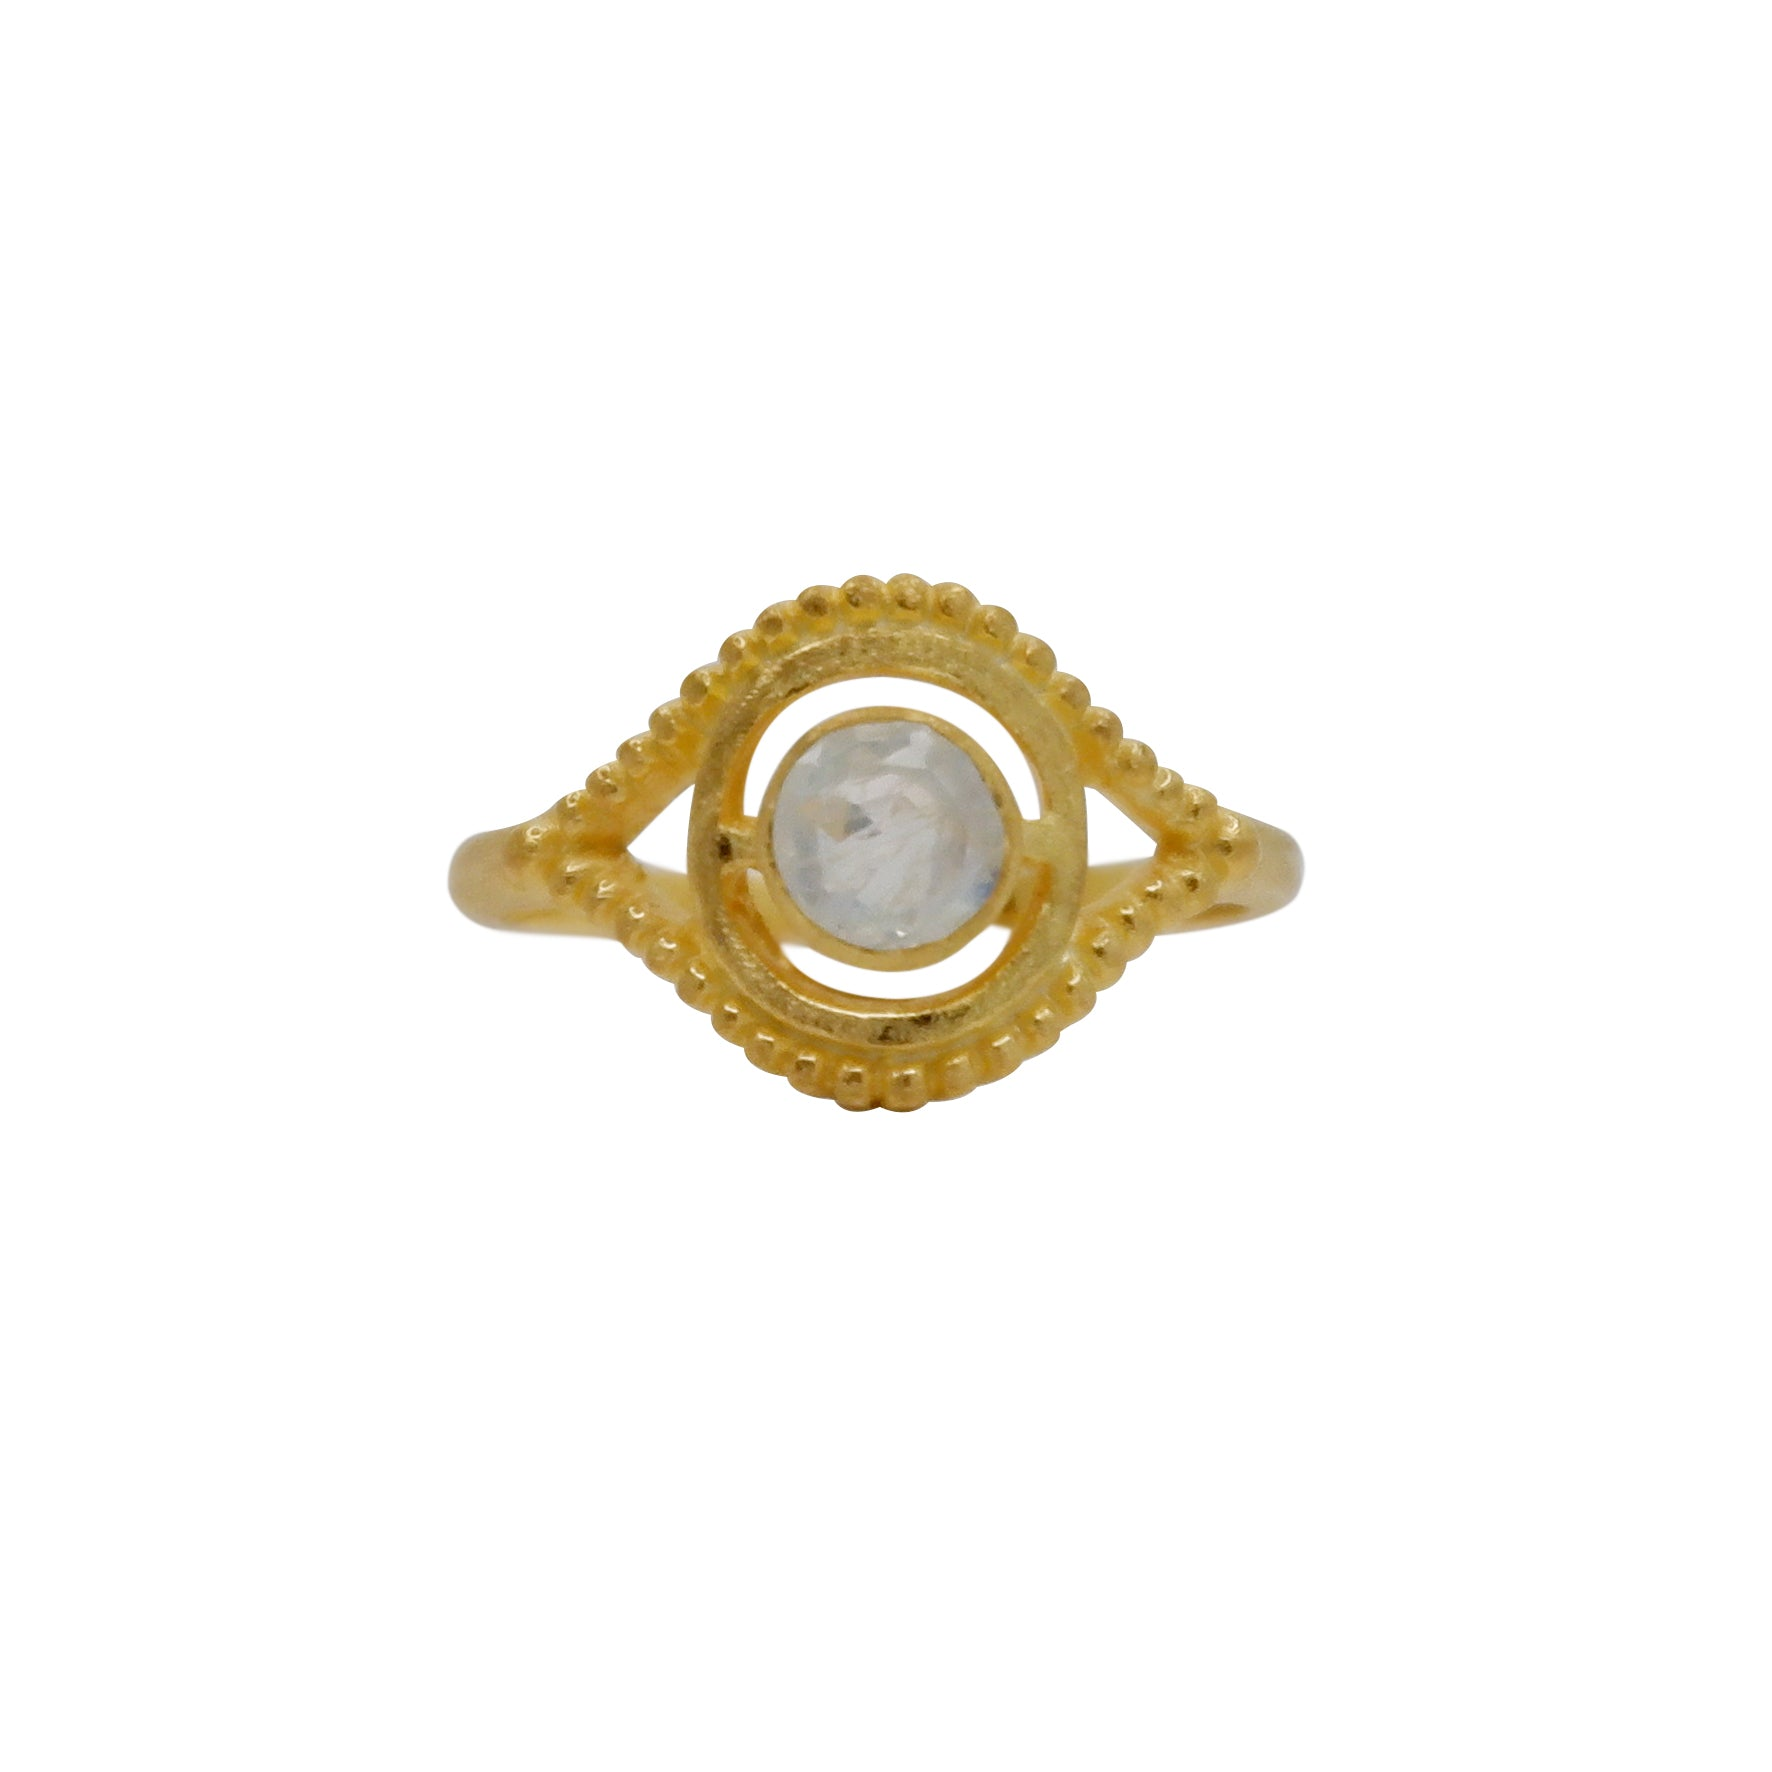 Hunt Of Hounds Nyx Ring. Eye ocular shape with moonstone.